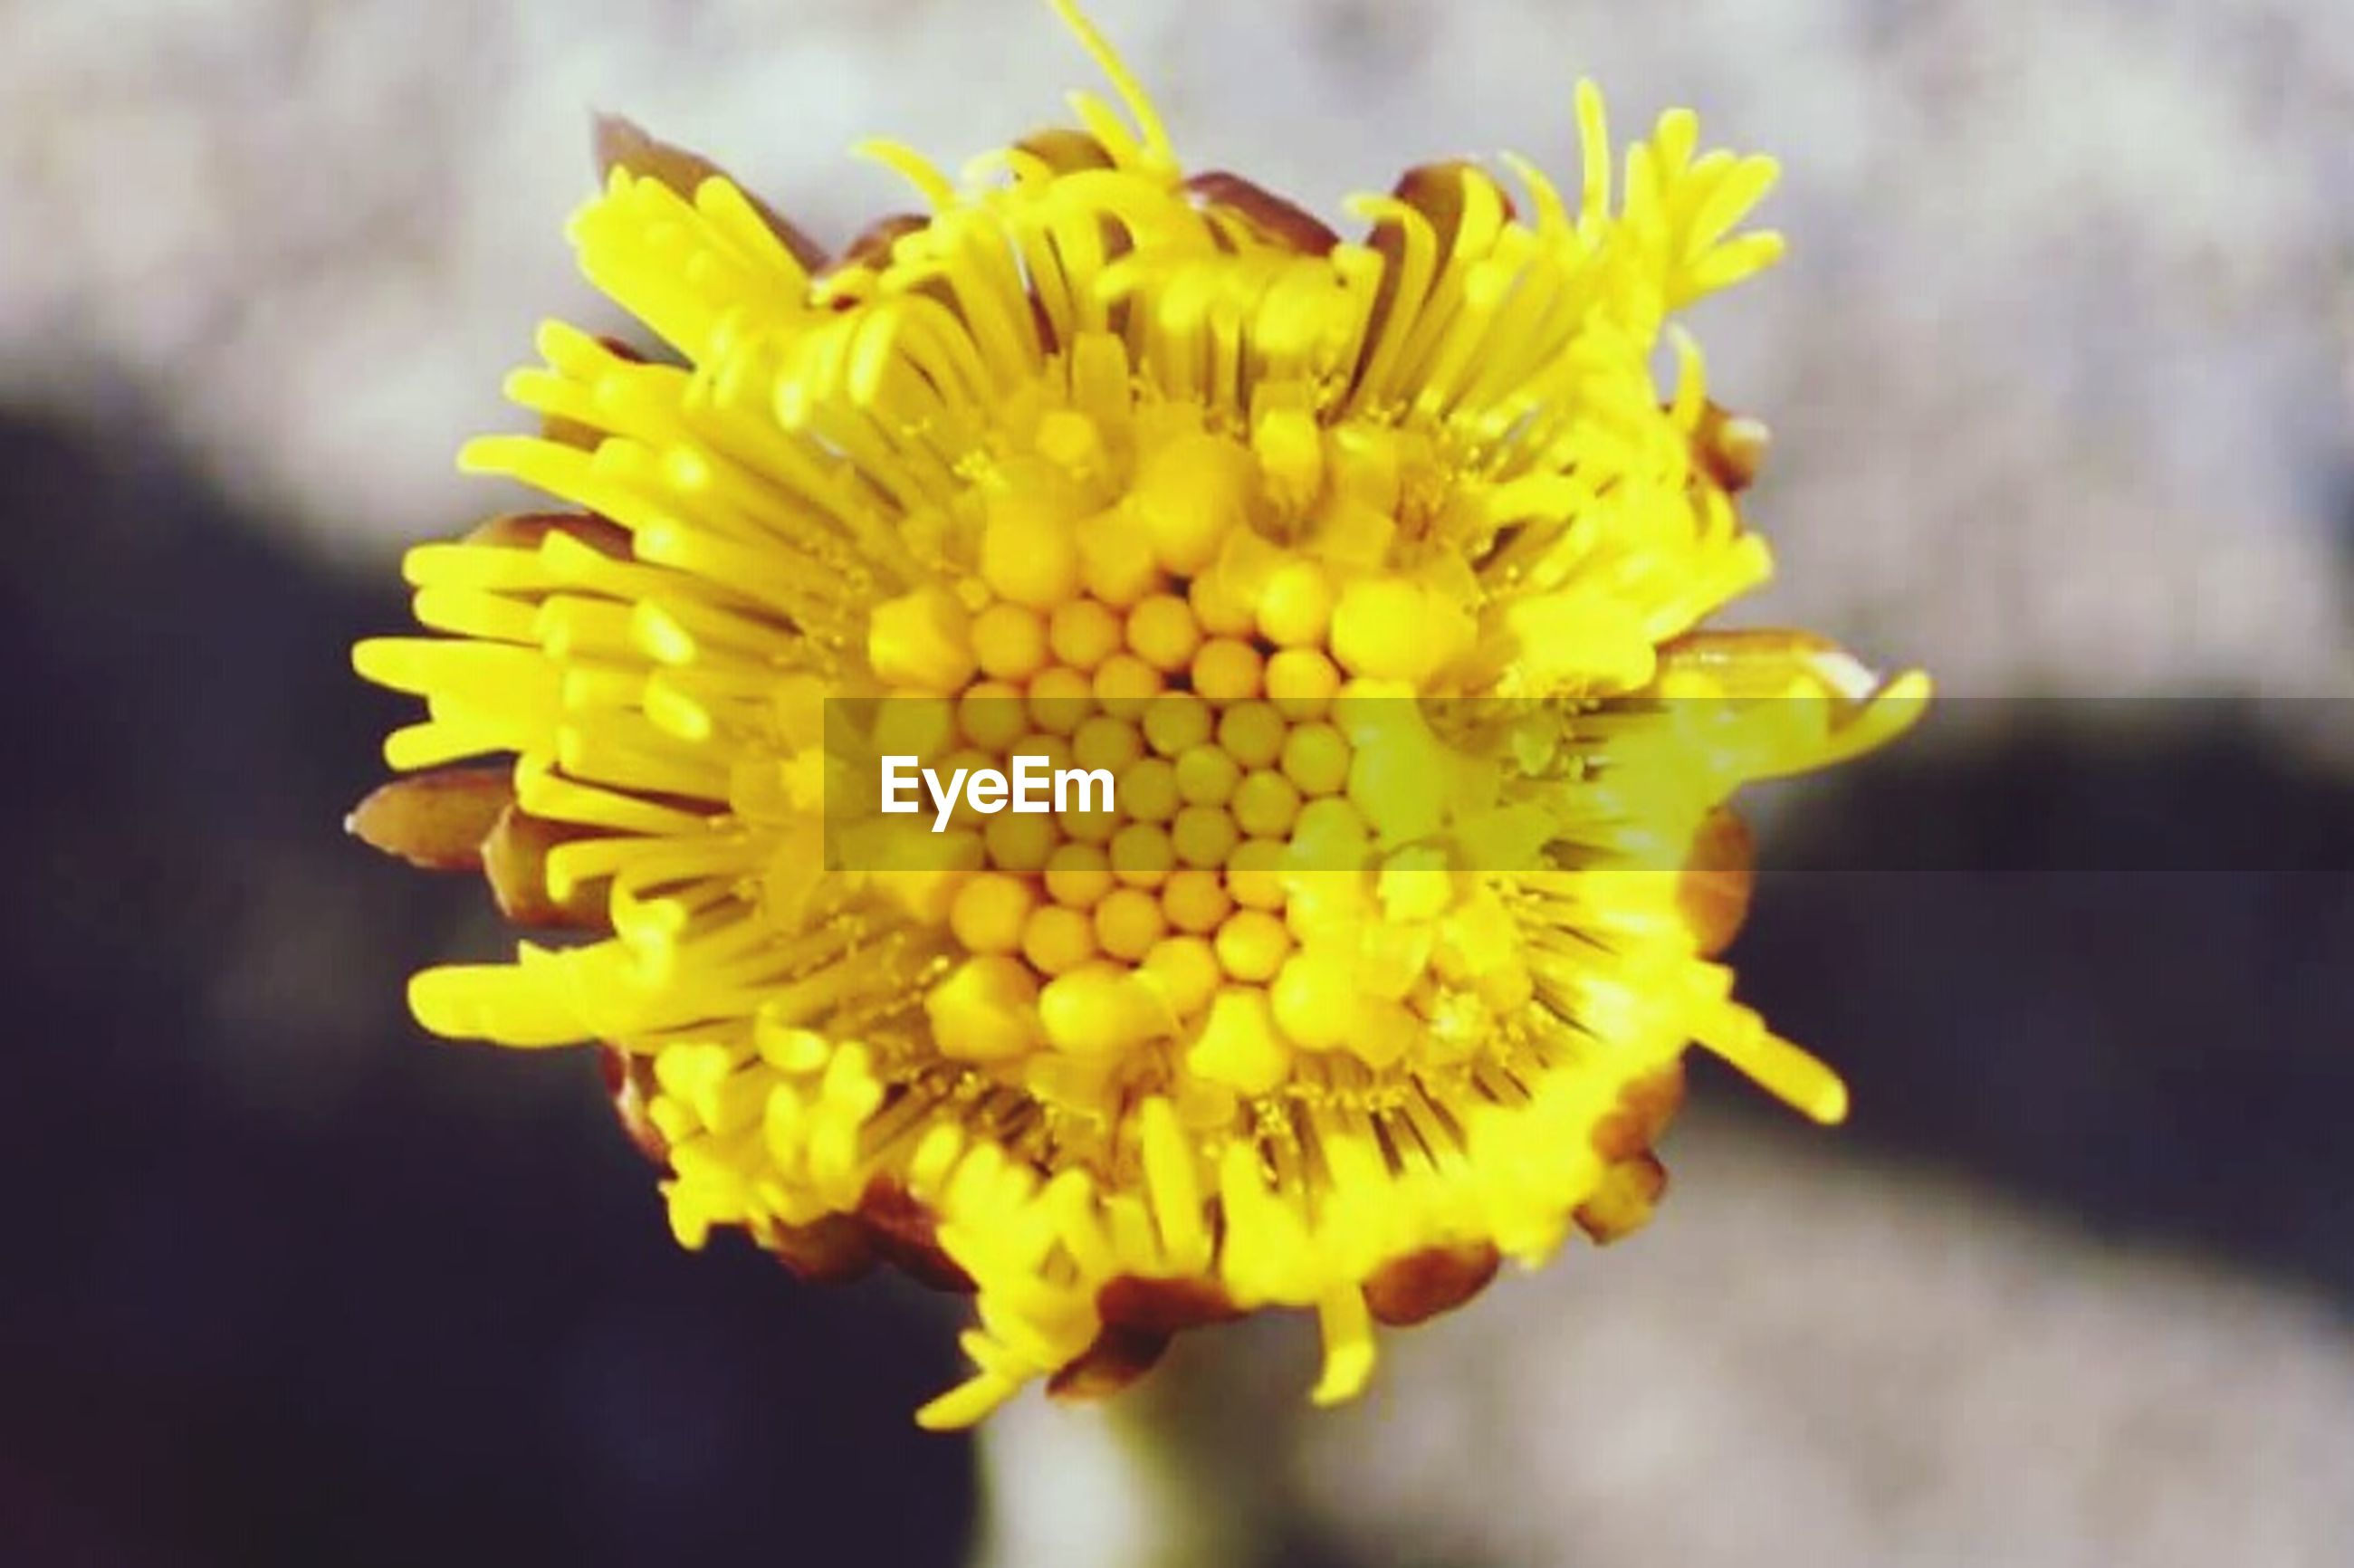 flower, yellow, petal, freshness, flower head, fragility, close-up, growth, focus on foreground, beauty in nature, blooming, pollen, nature, single flower, plant, sunflower, in bloom, selective focus, outdoors, day